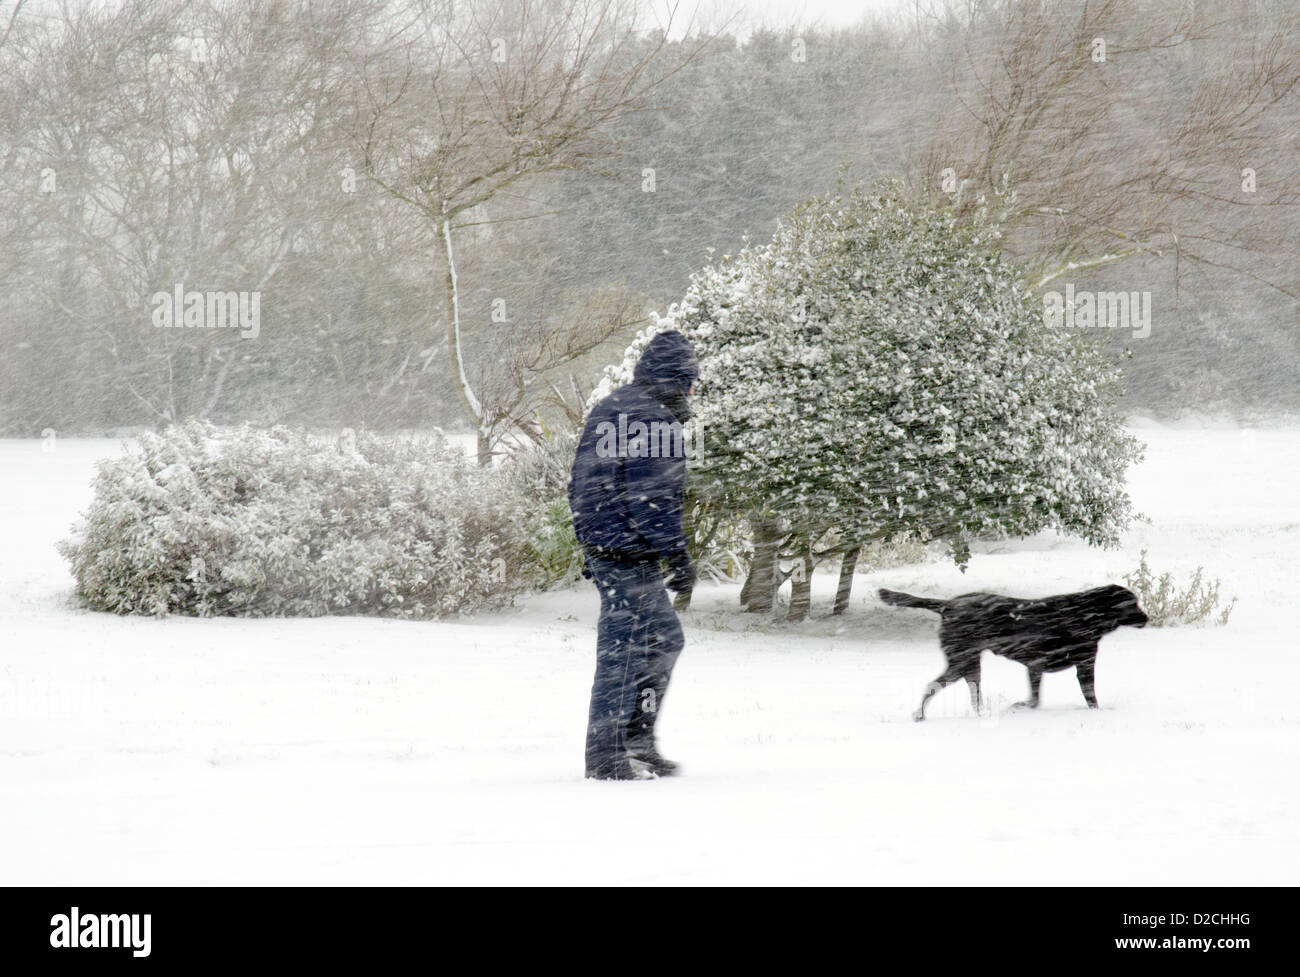 man-covered-in-snow-while-walking-a-dog-